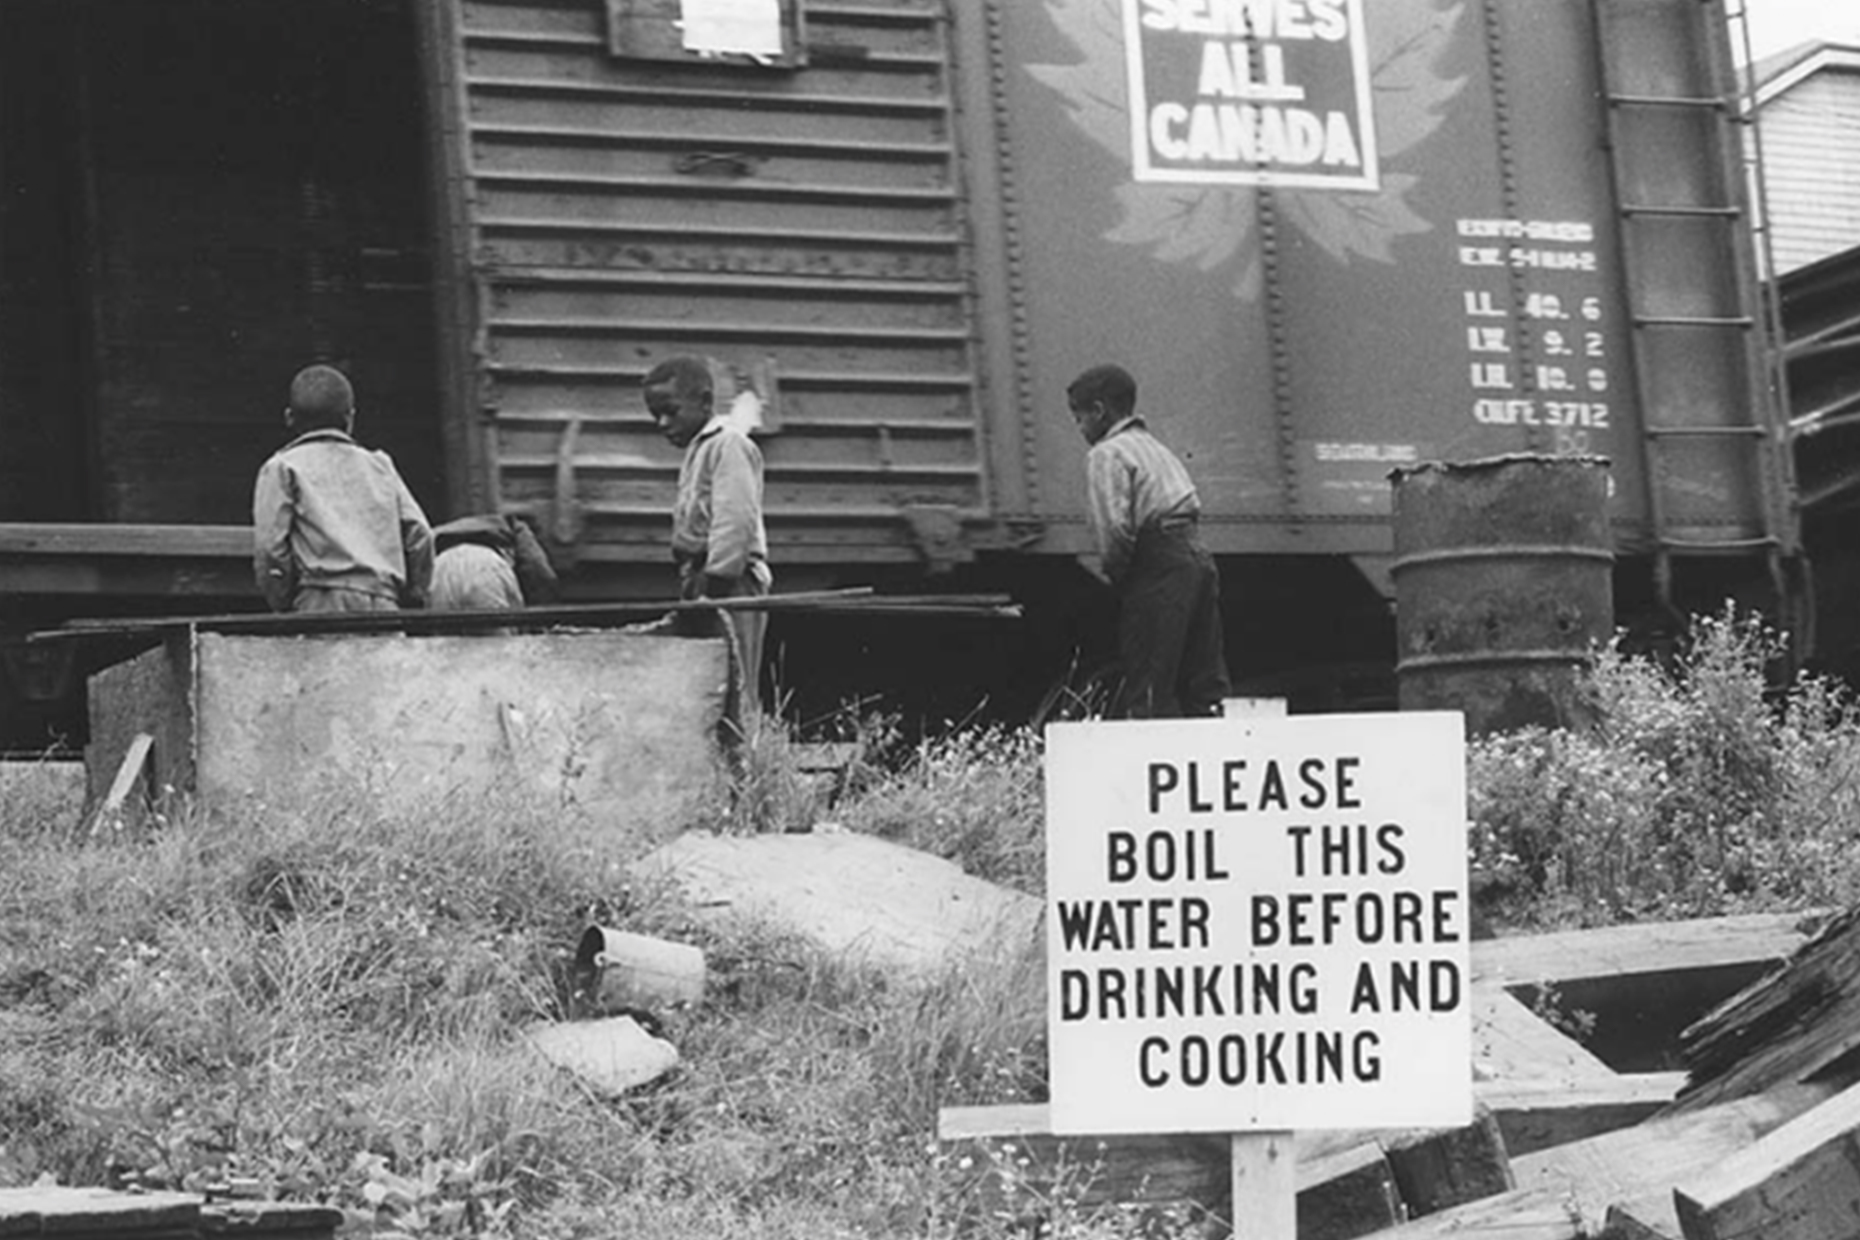 A black and white photo of three children standing near a train with a sign that reads please boil this water before drinking and cooking.